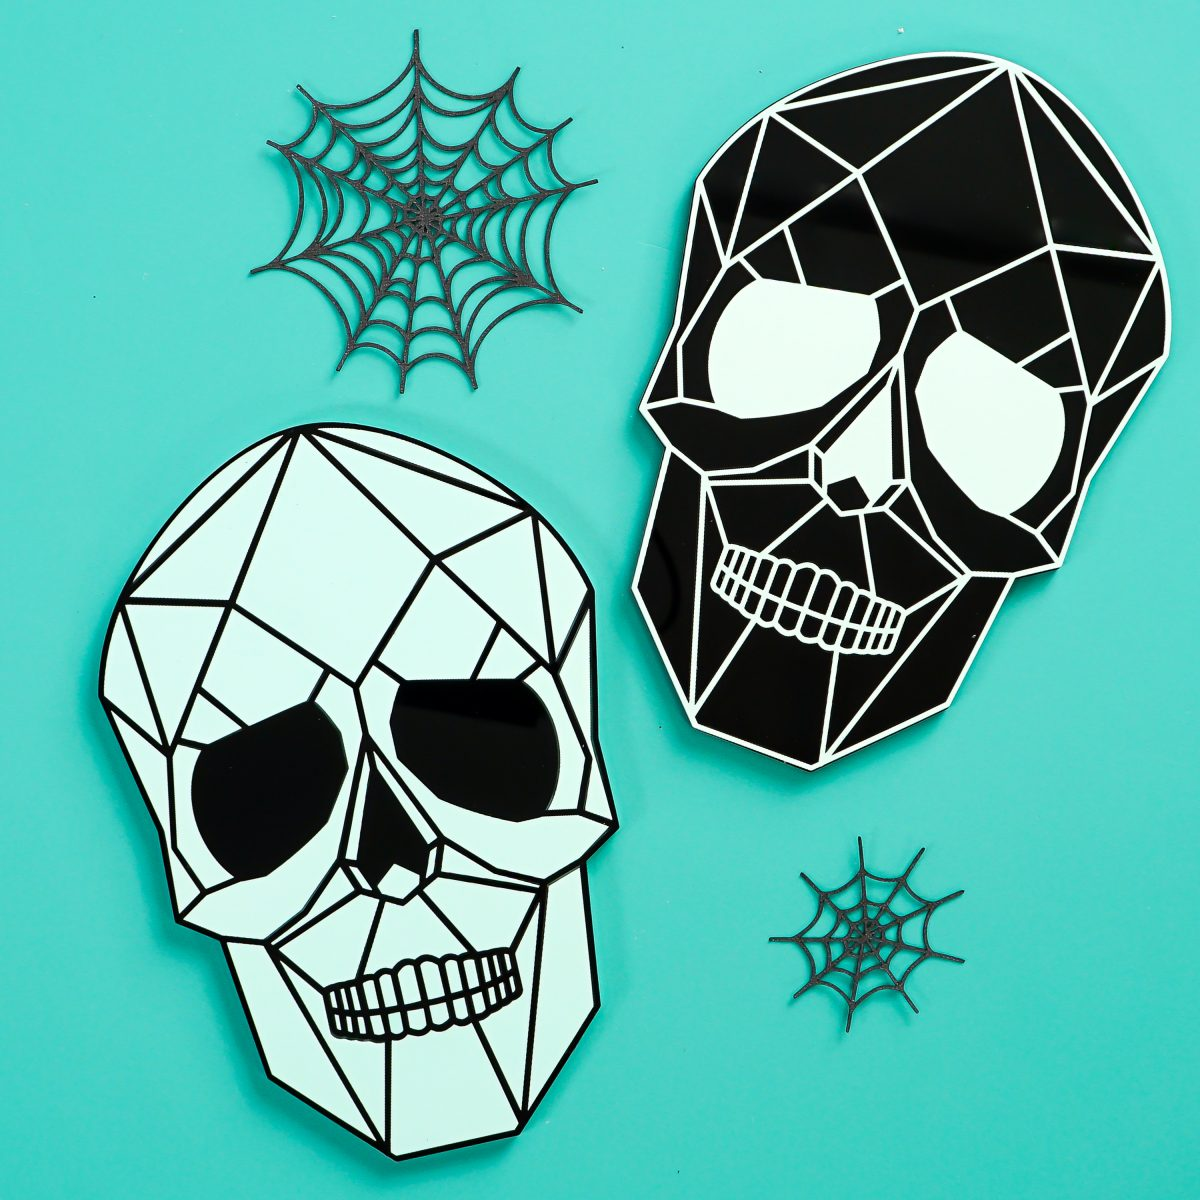 Two skulls on teal background with spider webs